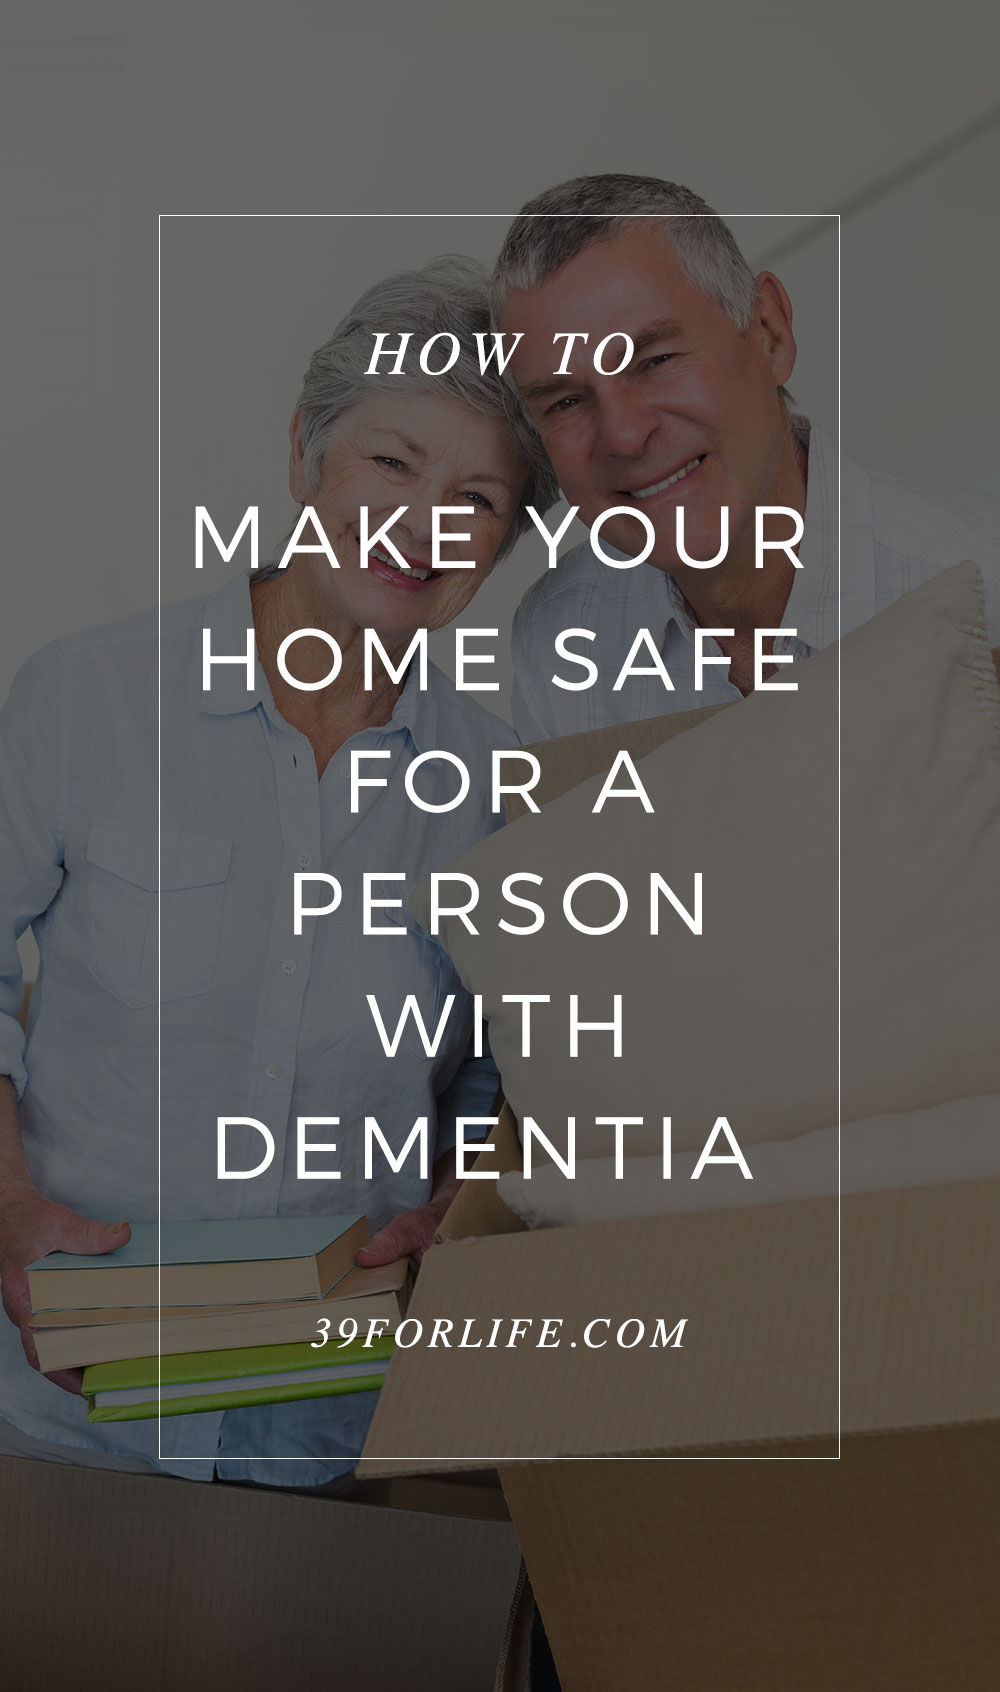 More than 15 million Americans with dementia live at home with a caregiver. Here are some precautions you can take at home to keep them safe.